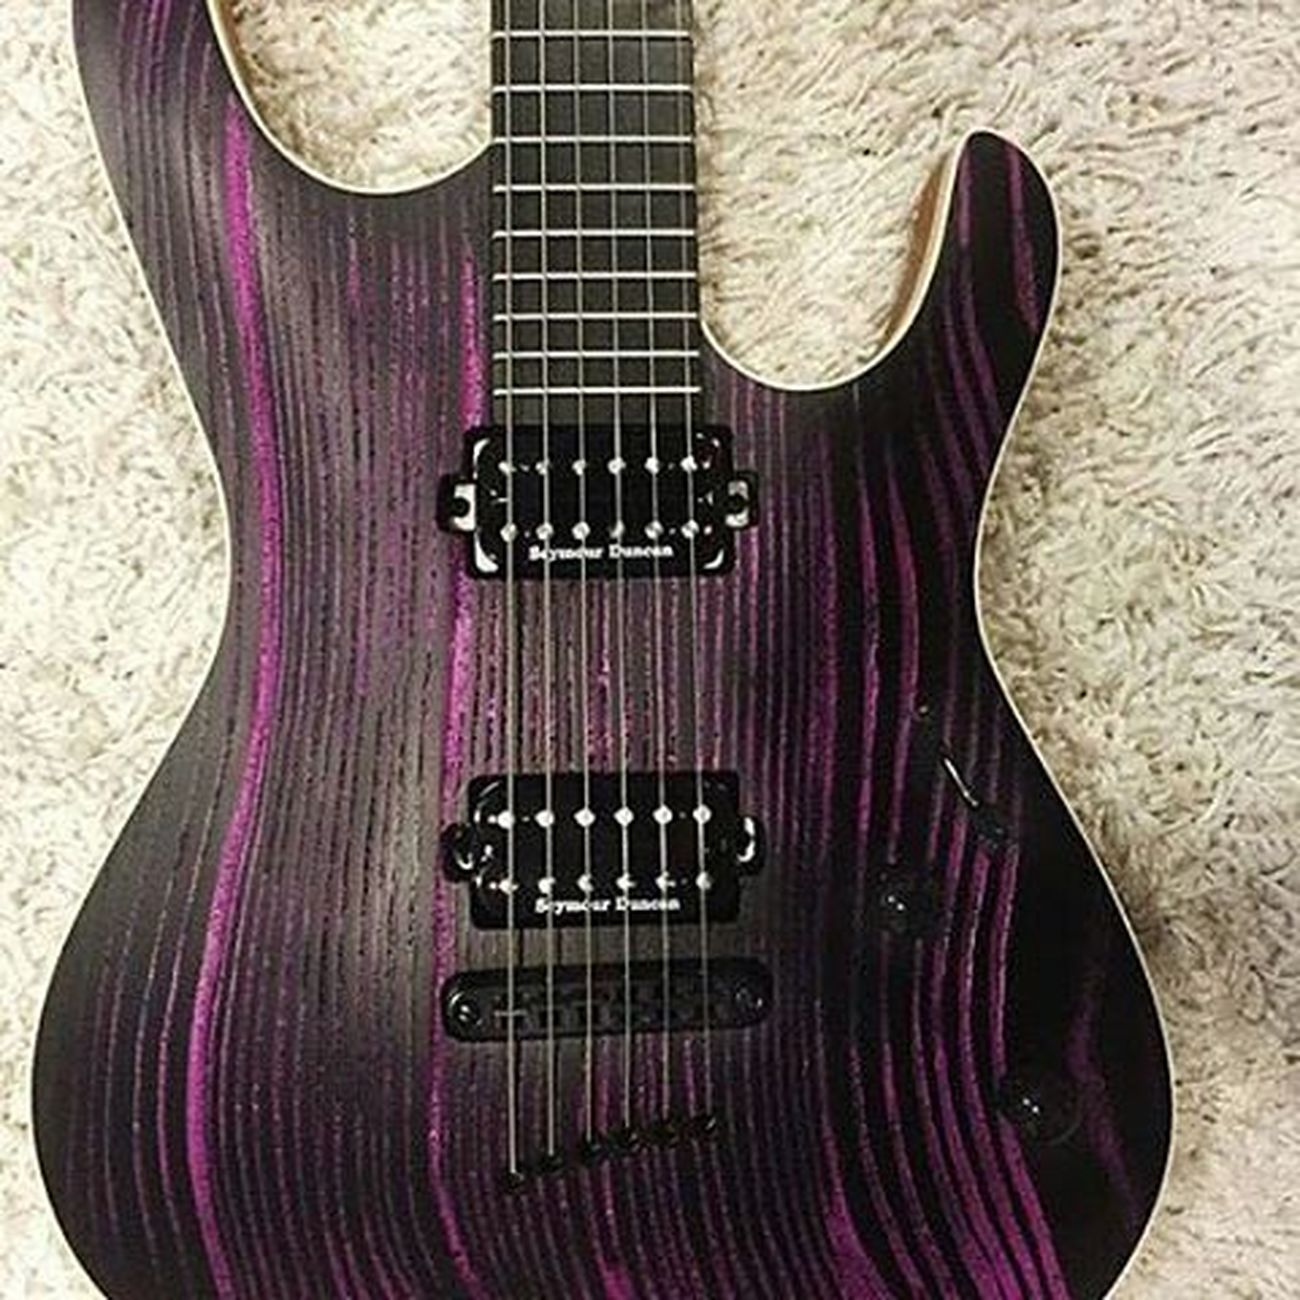 Repost @incredibleguitars with @repostapp ・・・ Wonderful purple Mayones. Guitar Guitars Guitarra Guitarplayer Guitarist Guitarporn Gig Mayones Guitarposts Pornguitar Wood Sound Metal Rock Wonderfulguitars Awesomeguitars Incredibleguitars